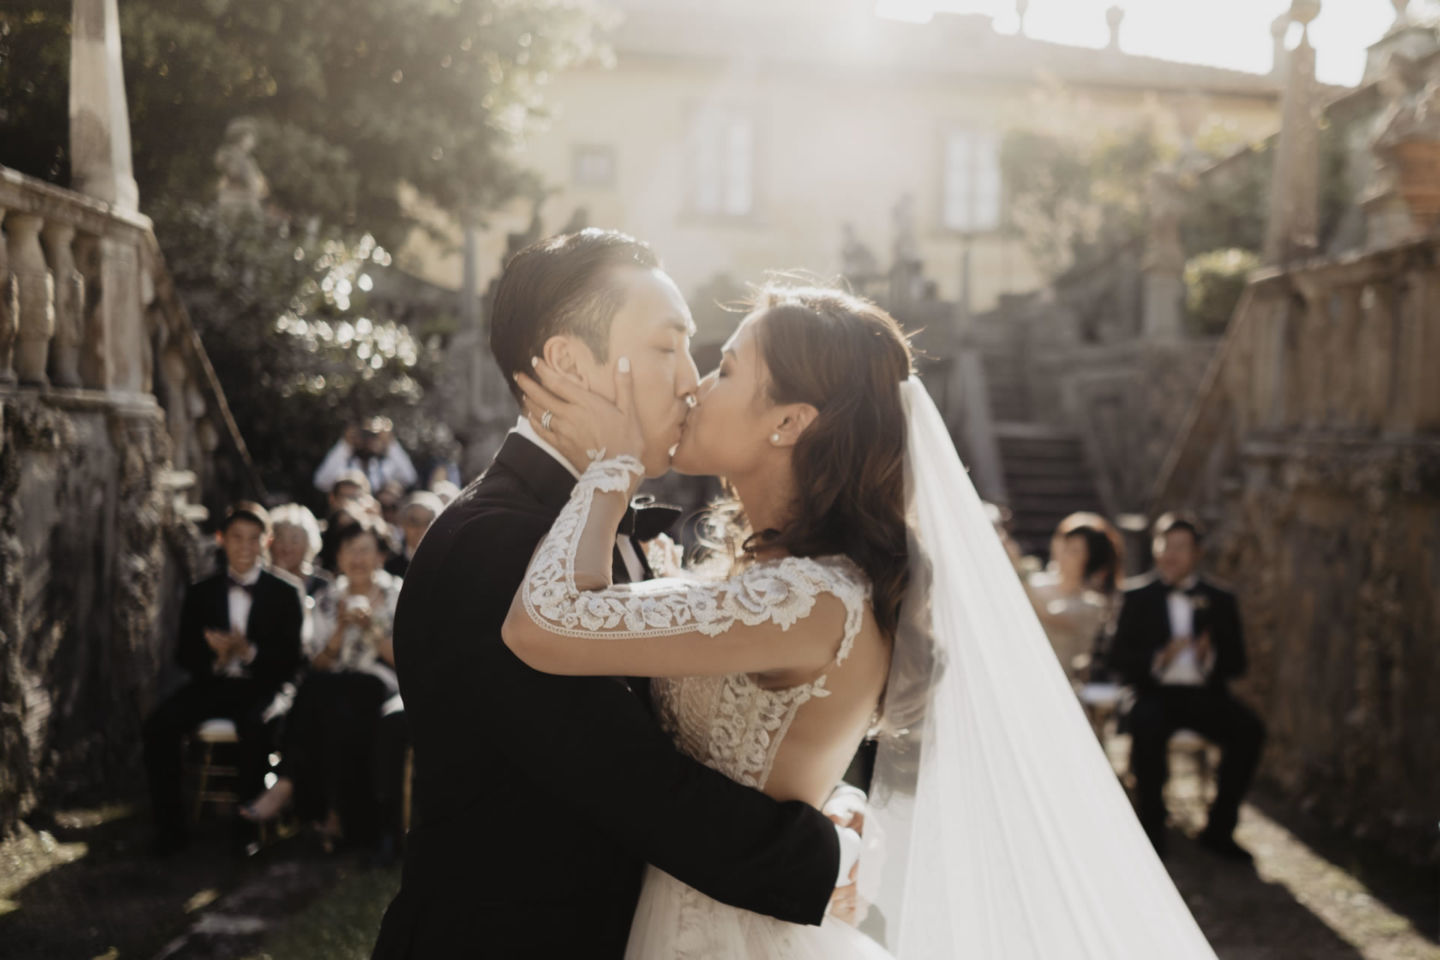 - 31 :: From Los angeles to Florence: a glamour asiatic wedding :: Luxury wedding photography - 30 ::  - 31